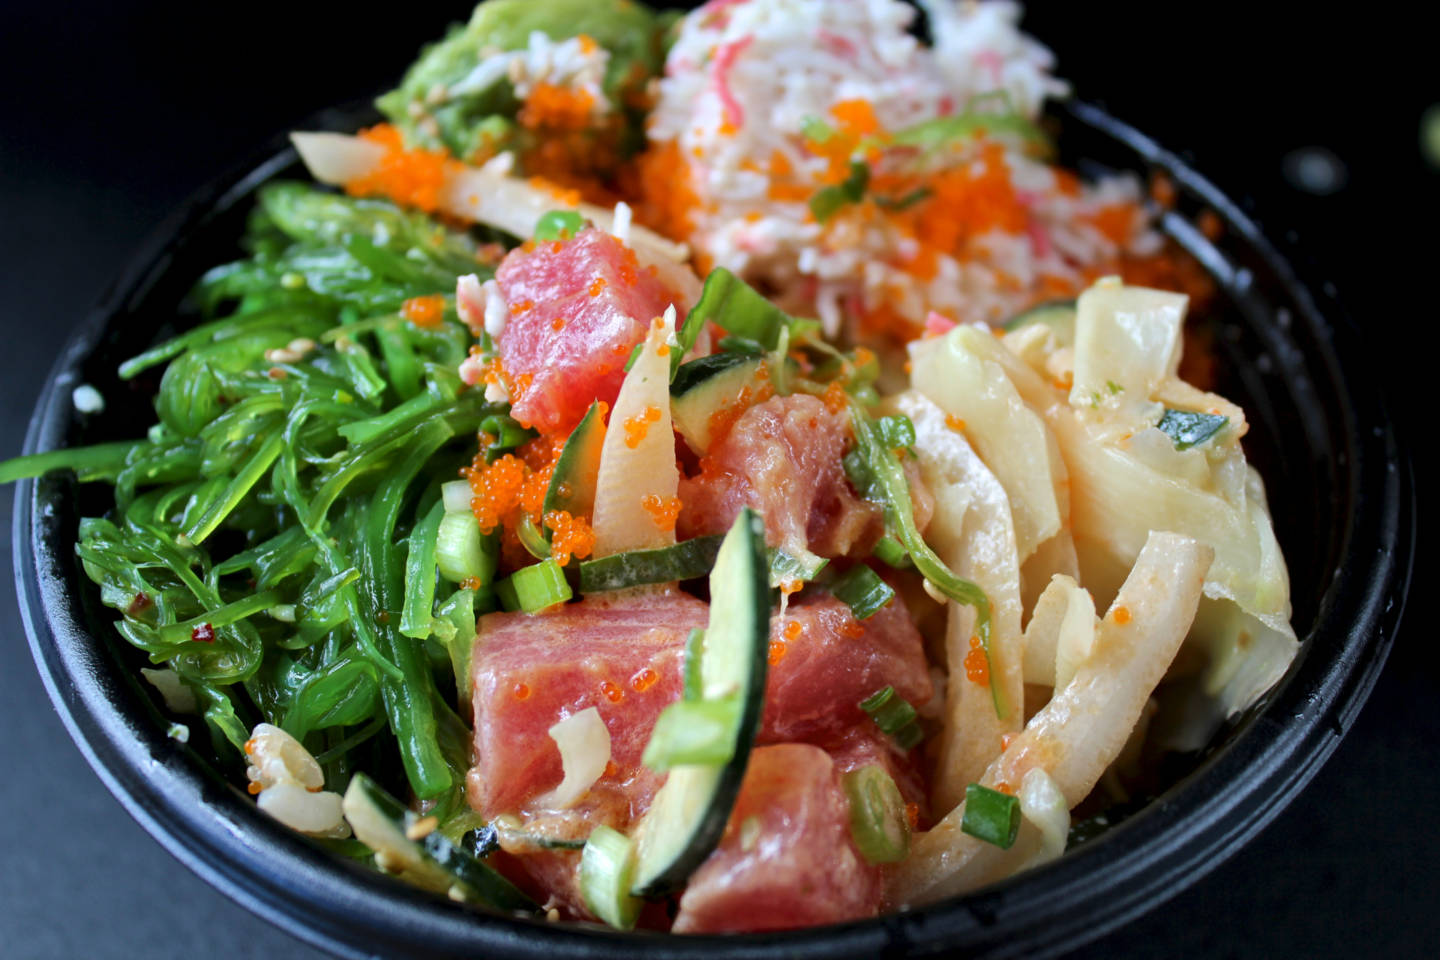 Ahi tuna and salmon with seaweed salad, ginger, cucumbers and green onions at Poki Bowl.  Jeff Cianci